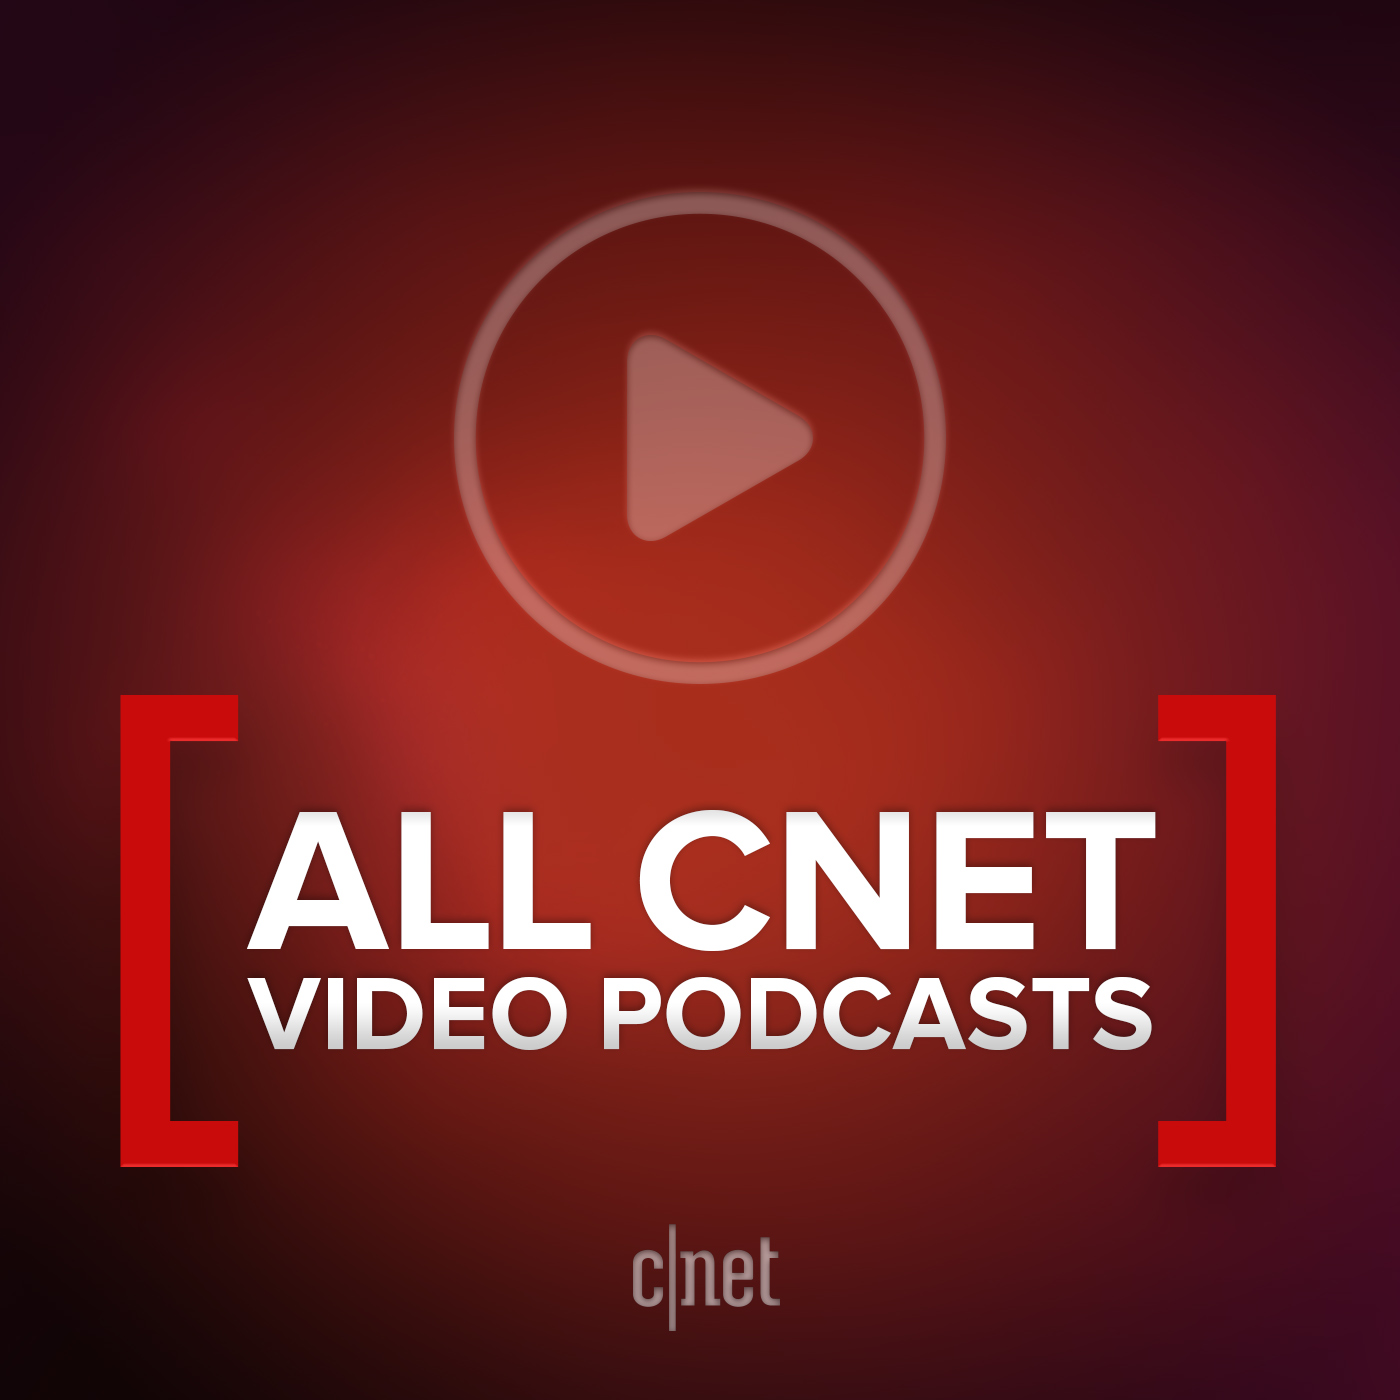 All CNET Video Podcasts (HD)